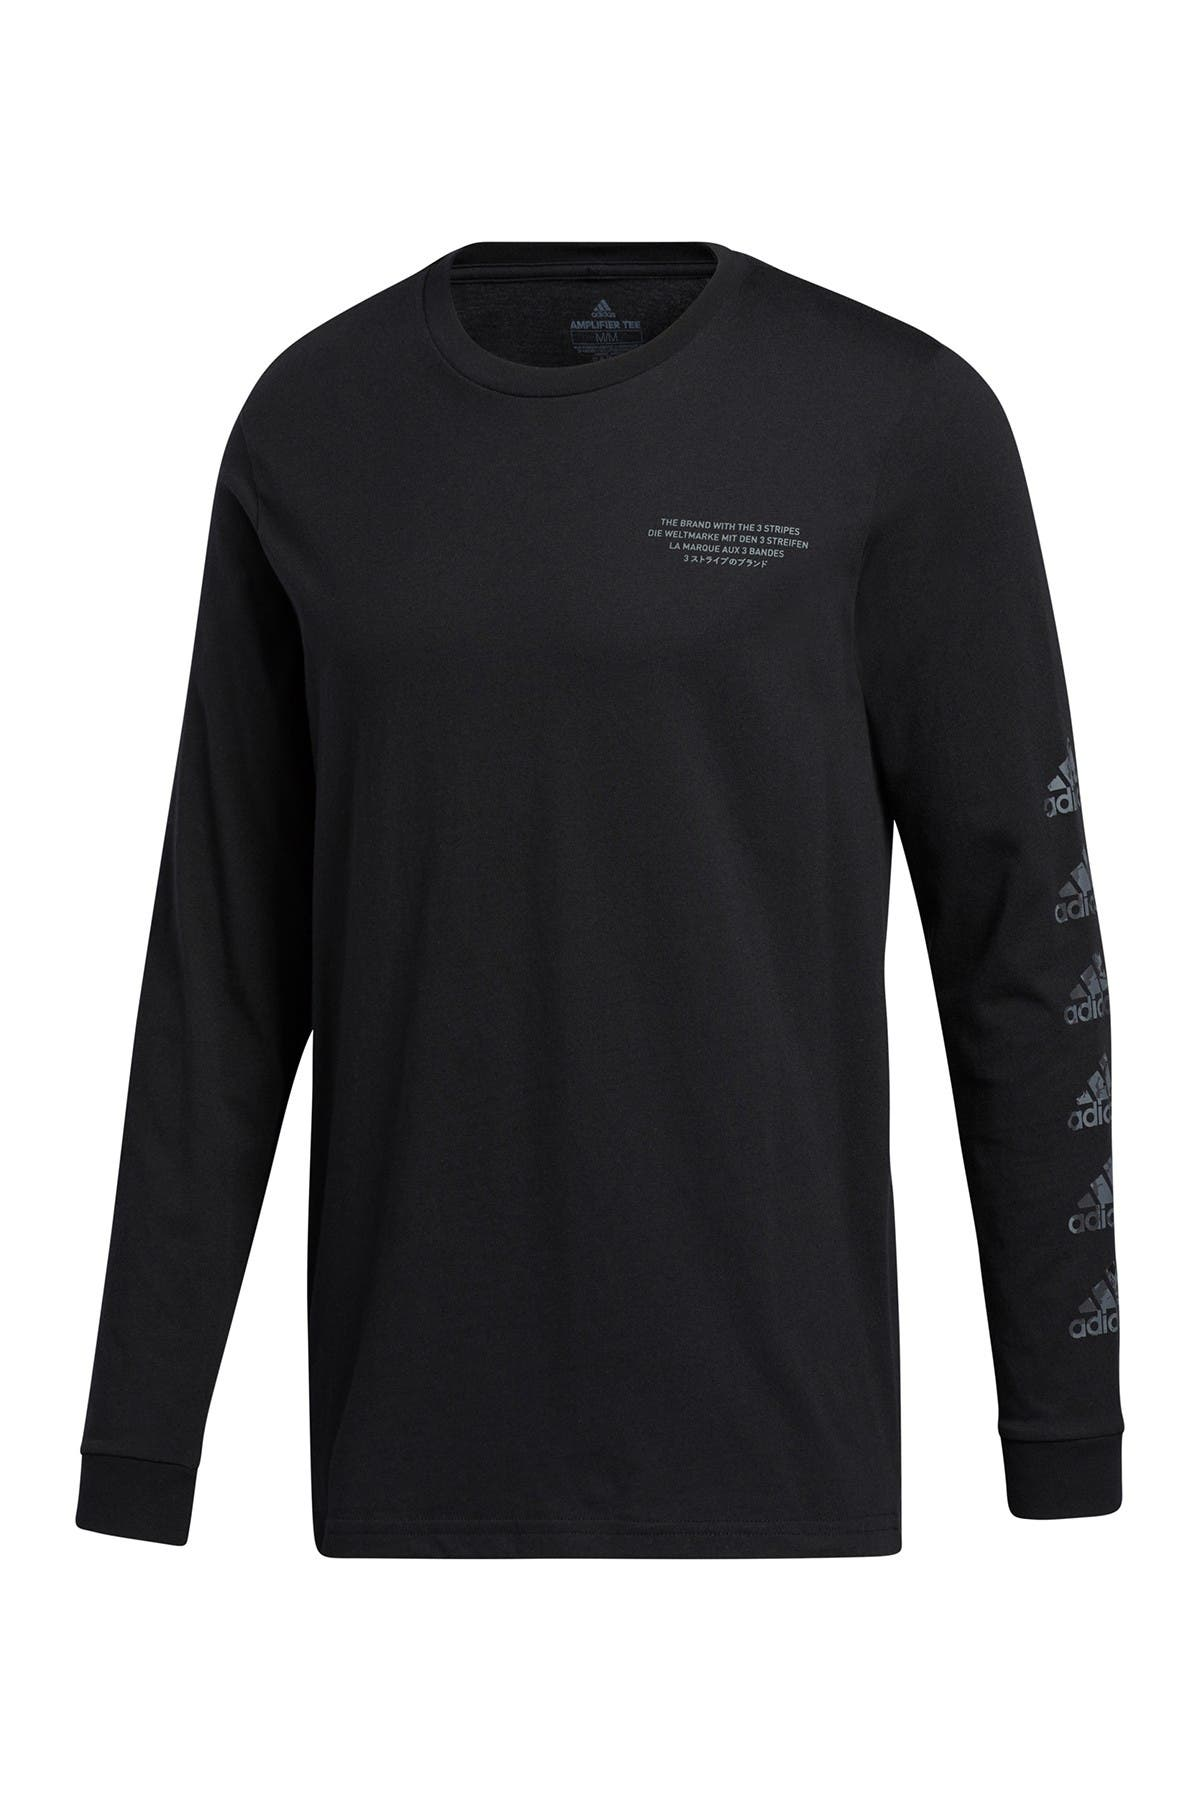 Image of adidas Continental Camo Graphic Long Sleeve T-Shirt